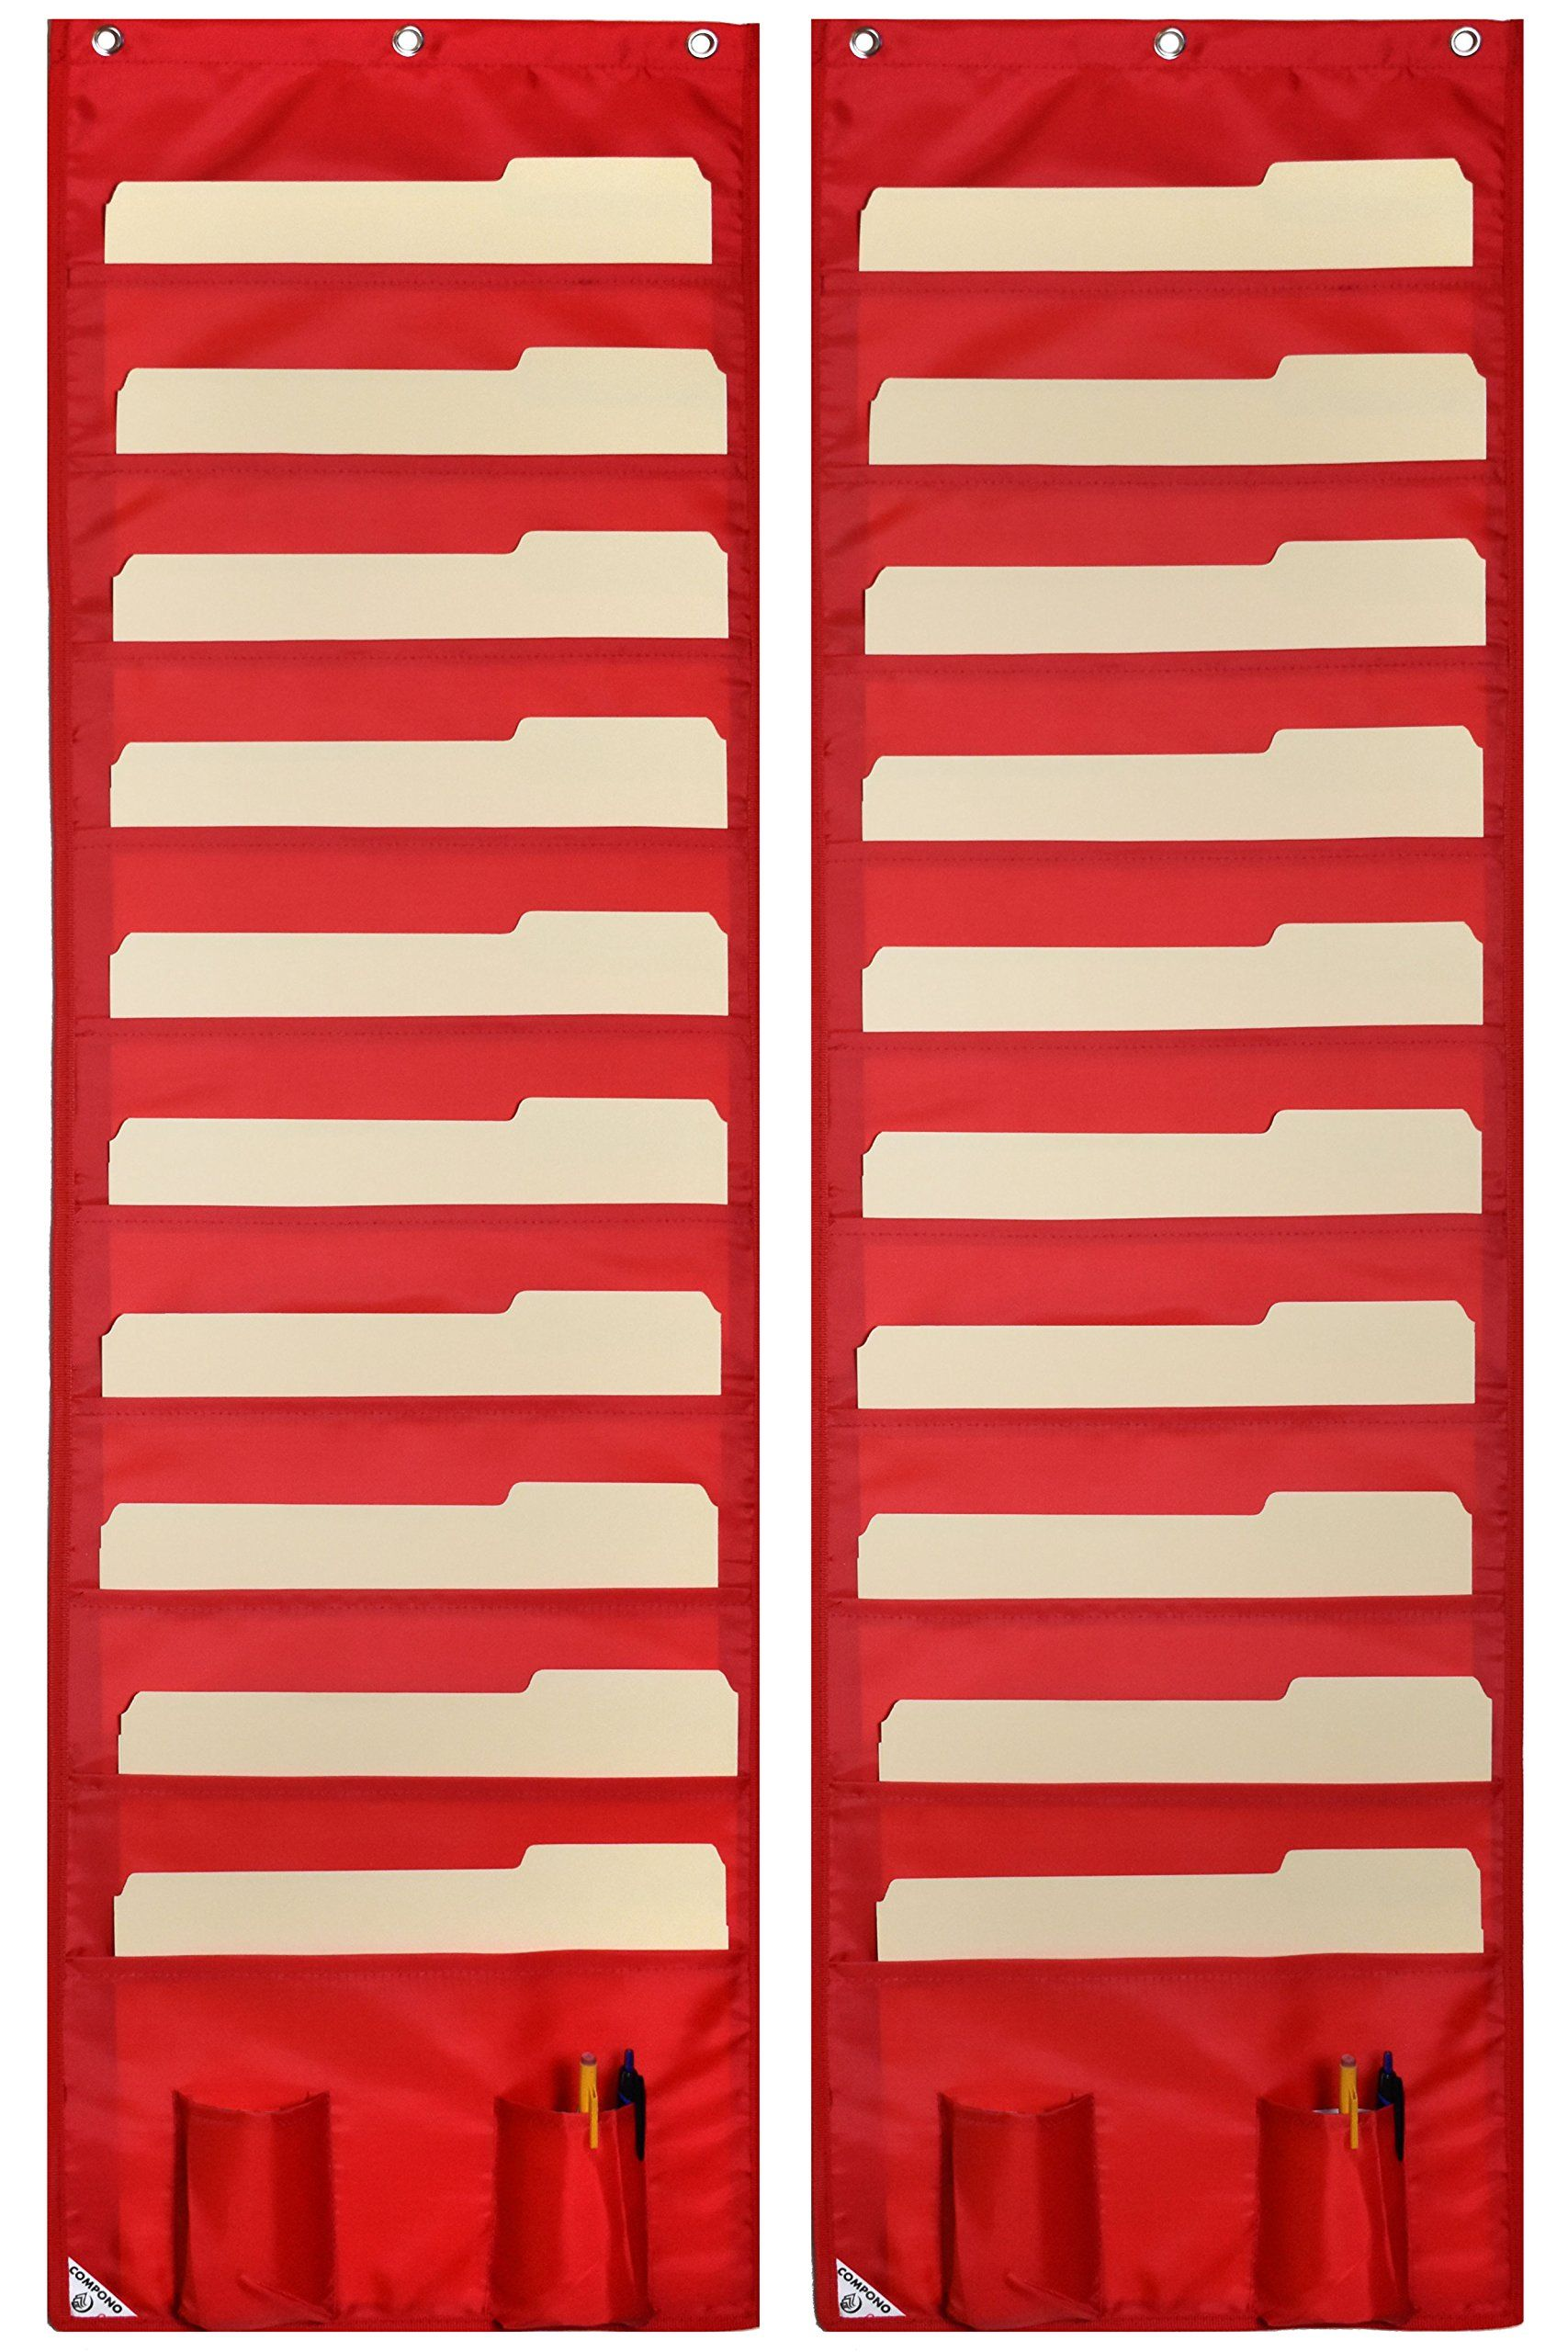 Classroom supplies for teachers school products wall pocket chart organizer red also storage charts pack file organizers best rh pinterest